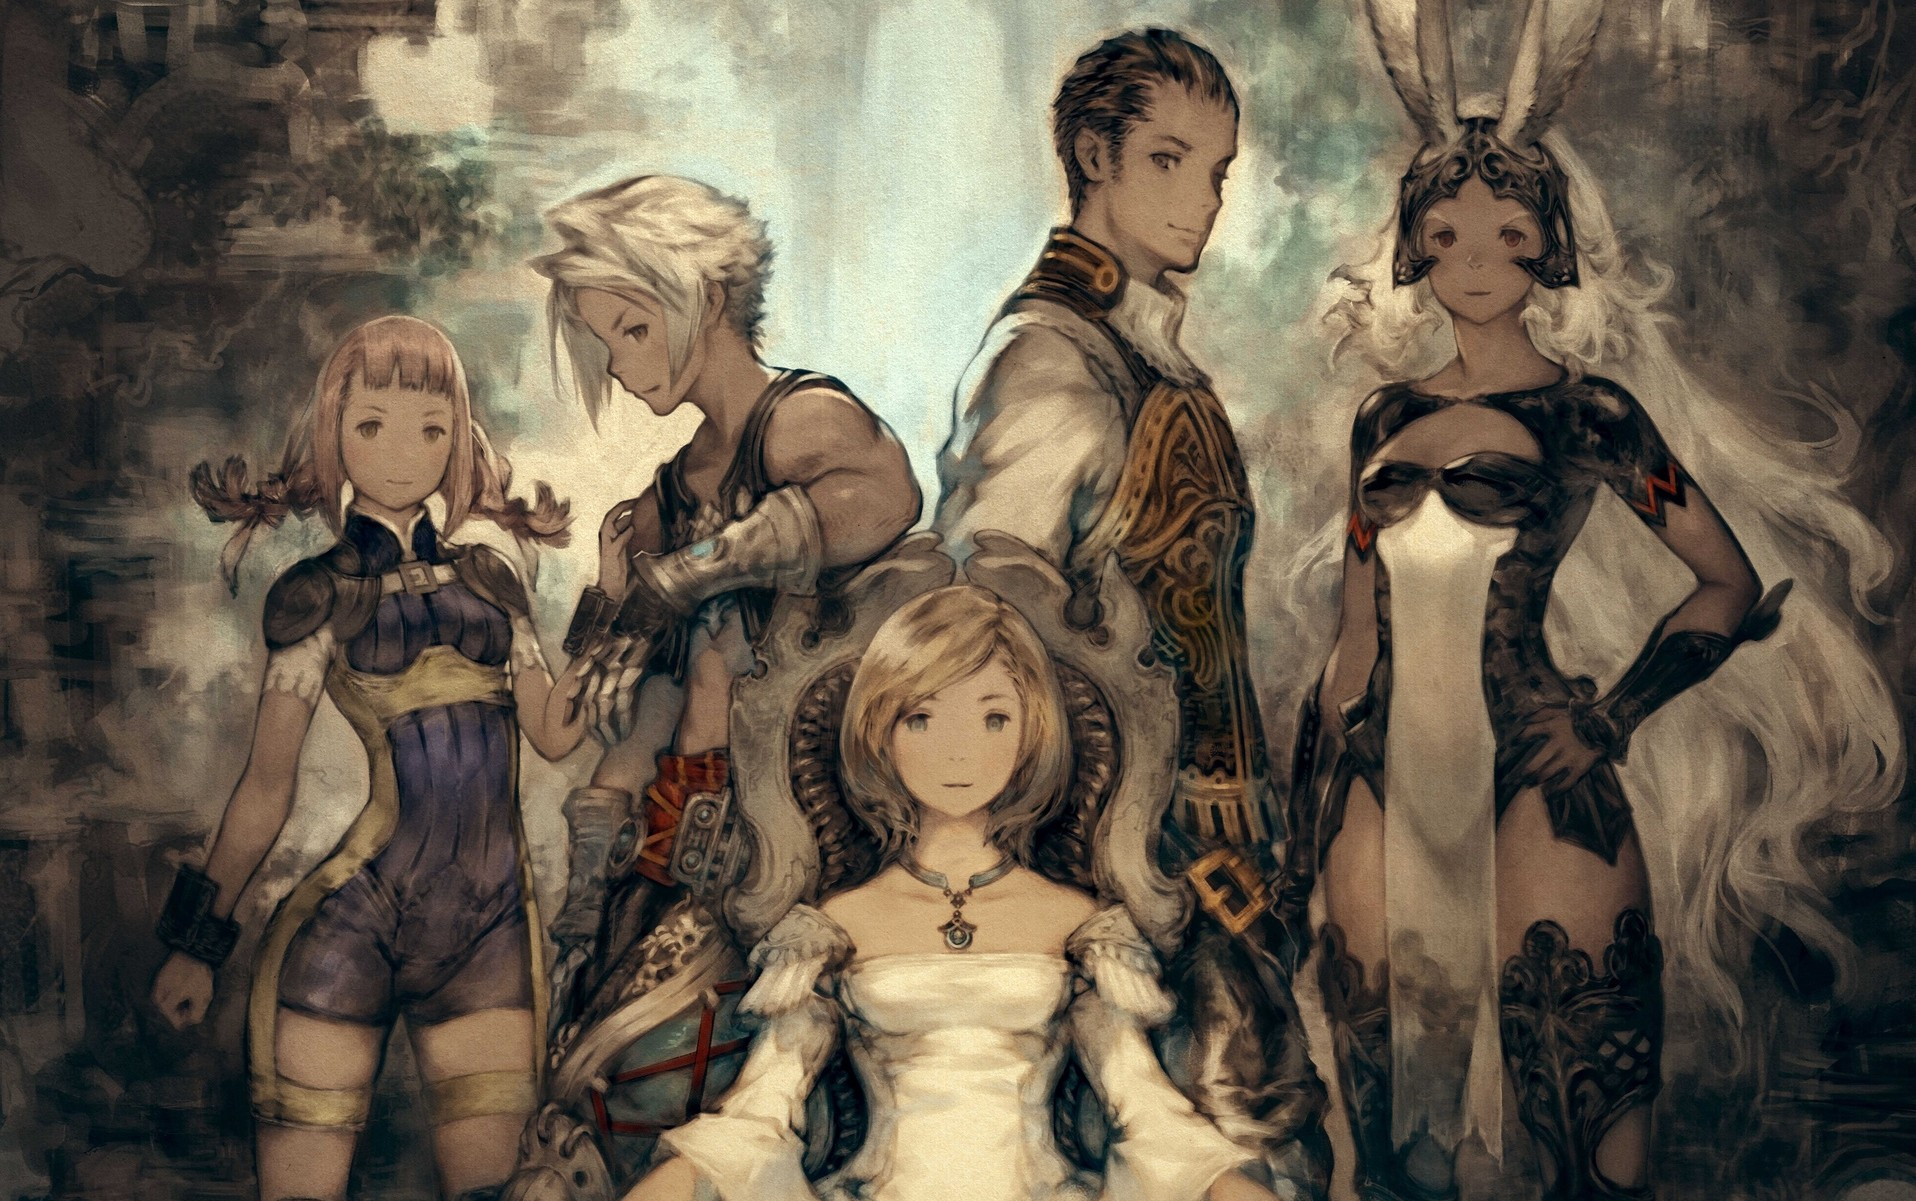 Final Fantasy XII: The Zodiac Age par Akihiko Yoshida